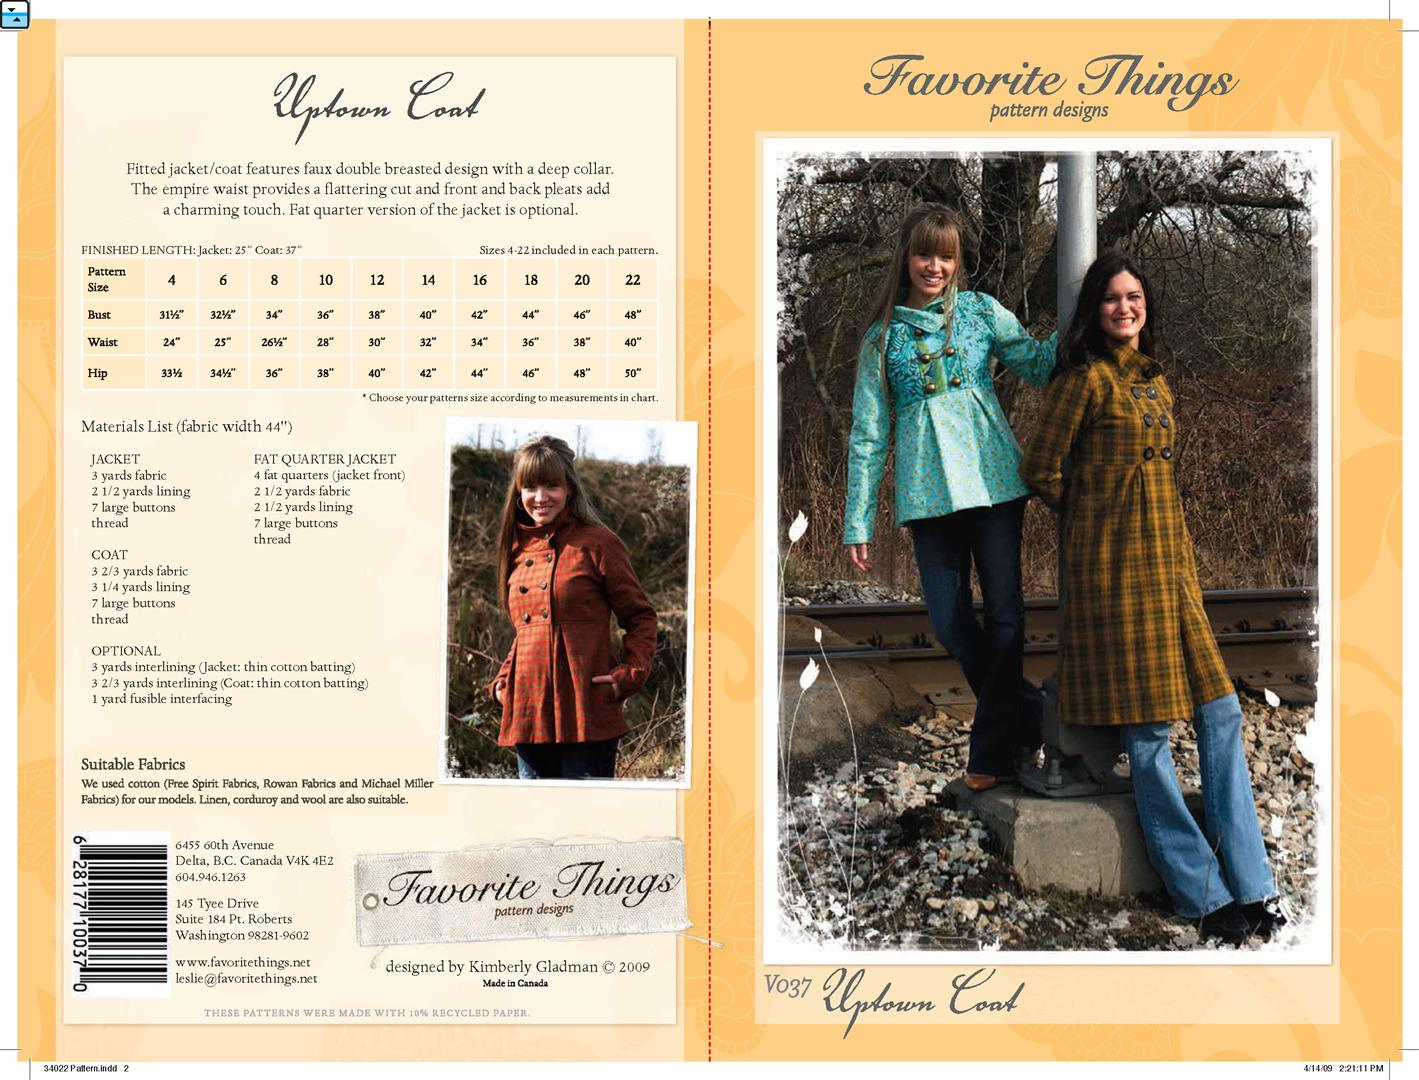 Favorite Things Uptown Coat V037